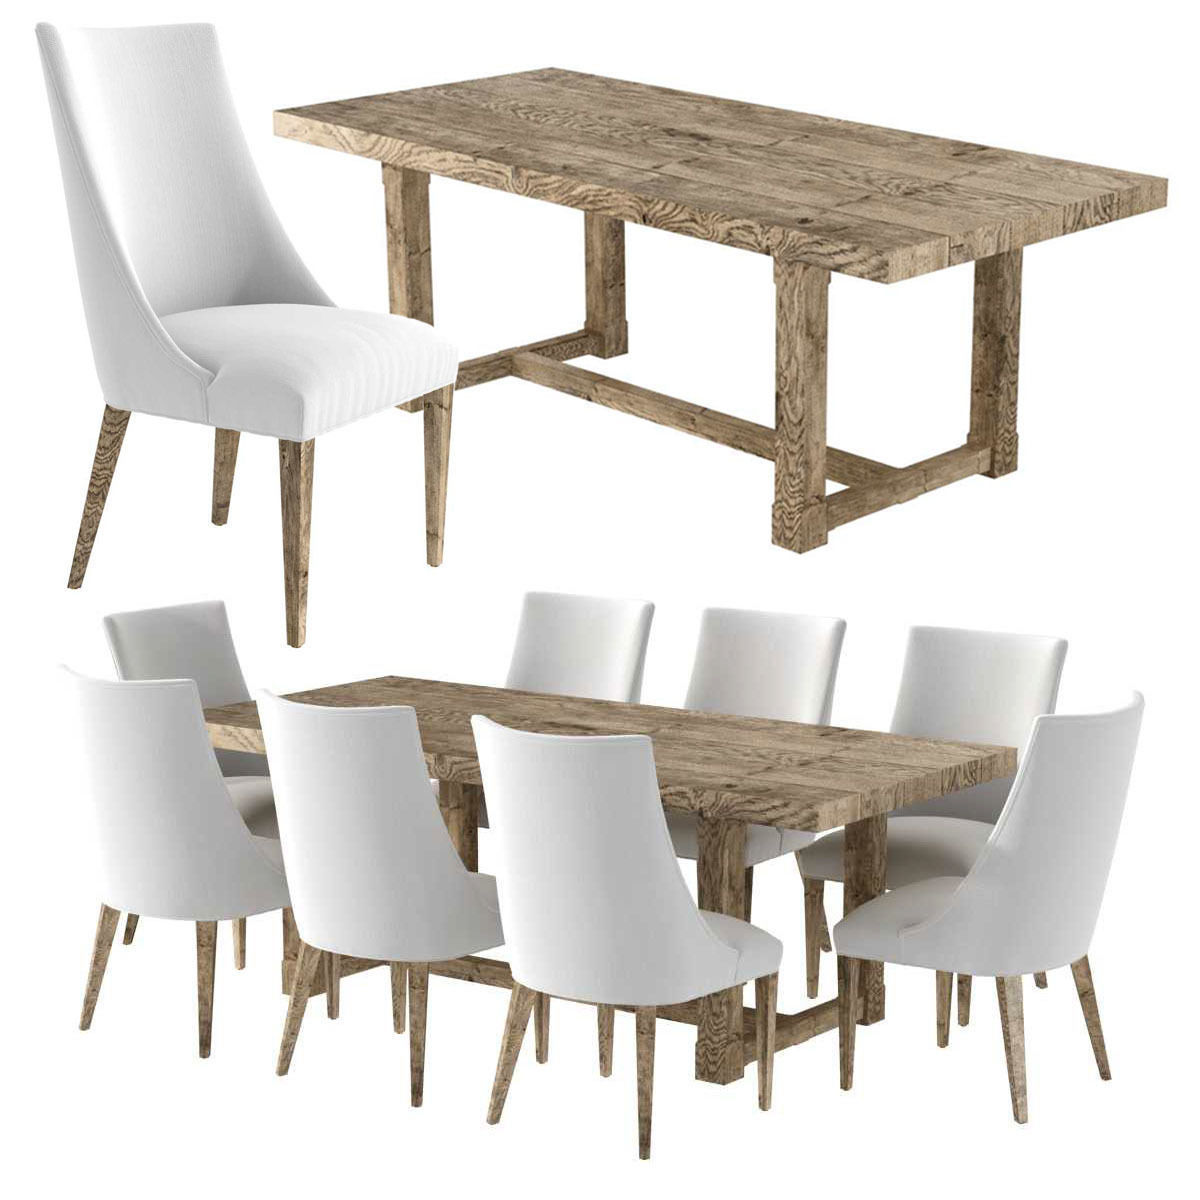 Restoration Hardware ELLA FABRIC CHAIR and CAYDEN  DINING TABLE